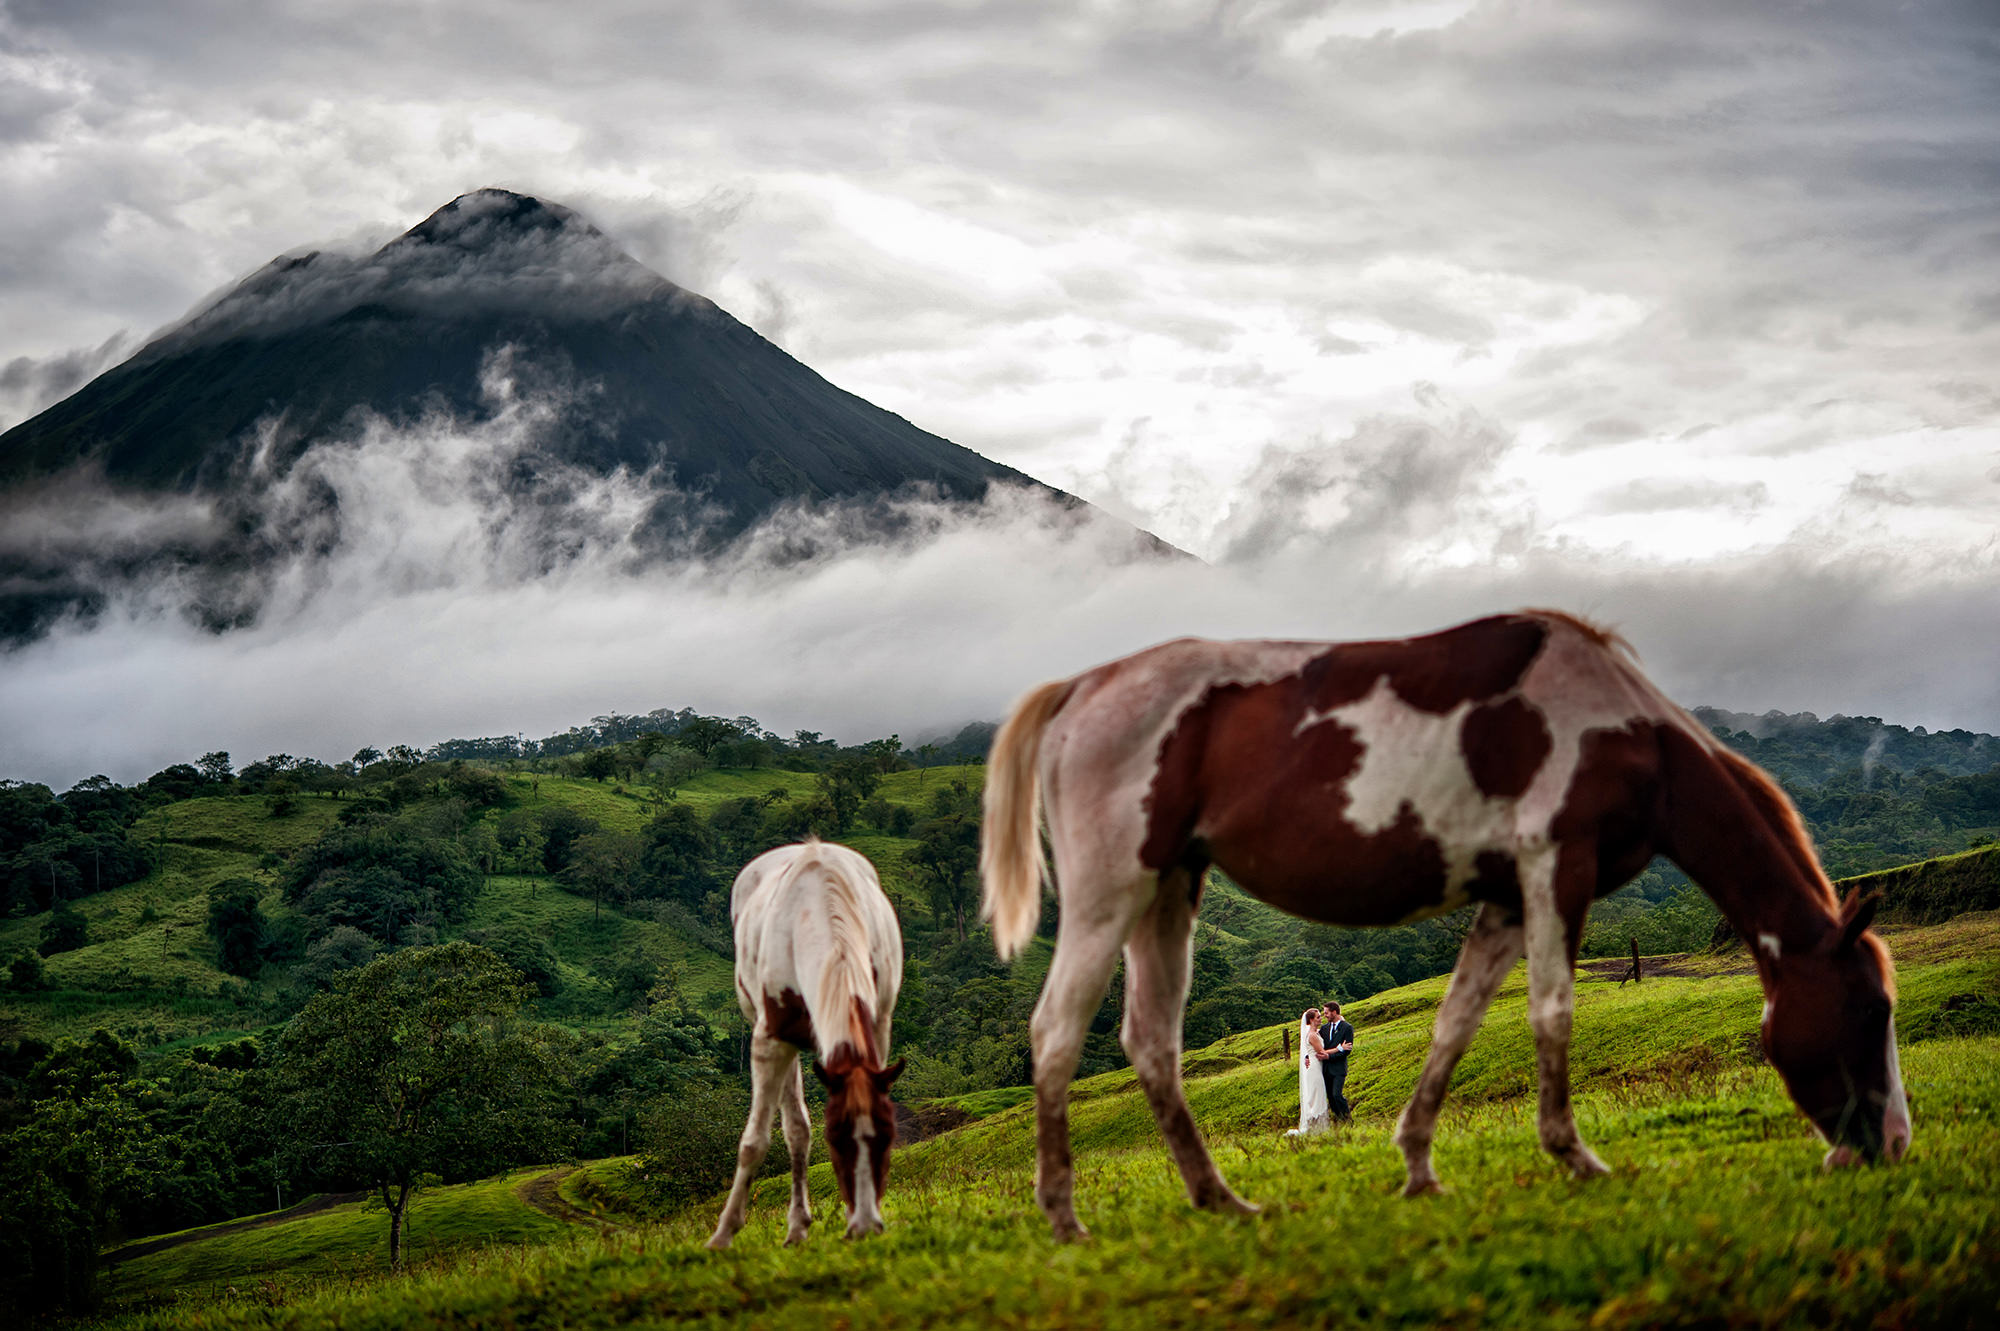 Couple framed by grazing horses in countryside against mountains, by Davina Plus Daniel